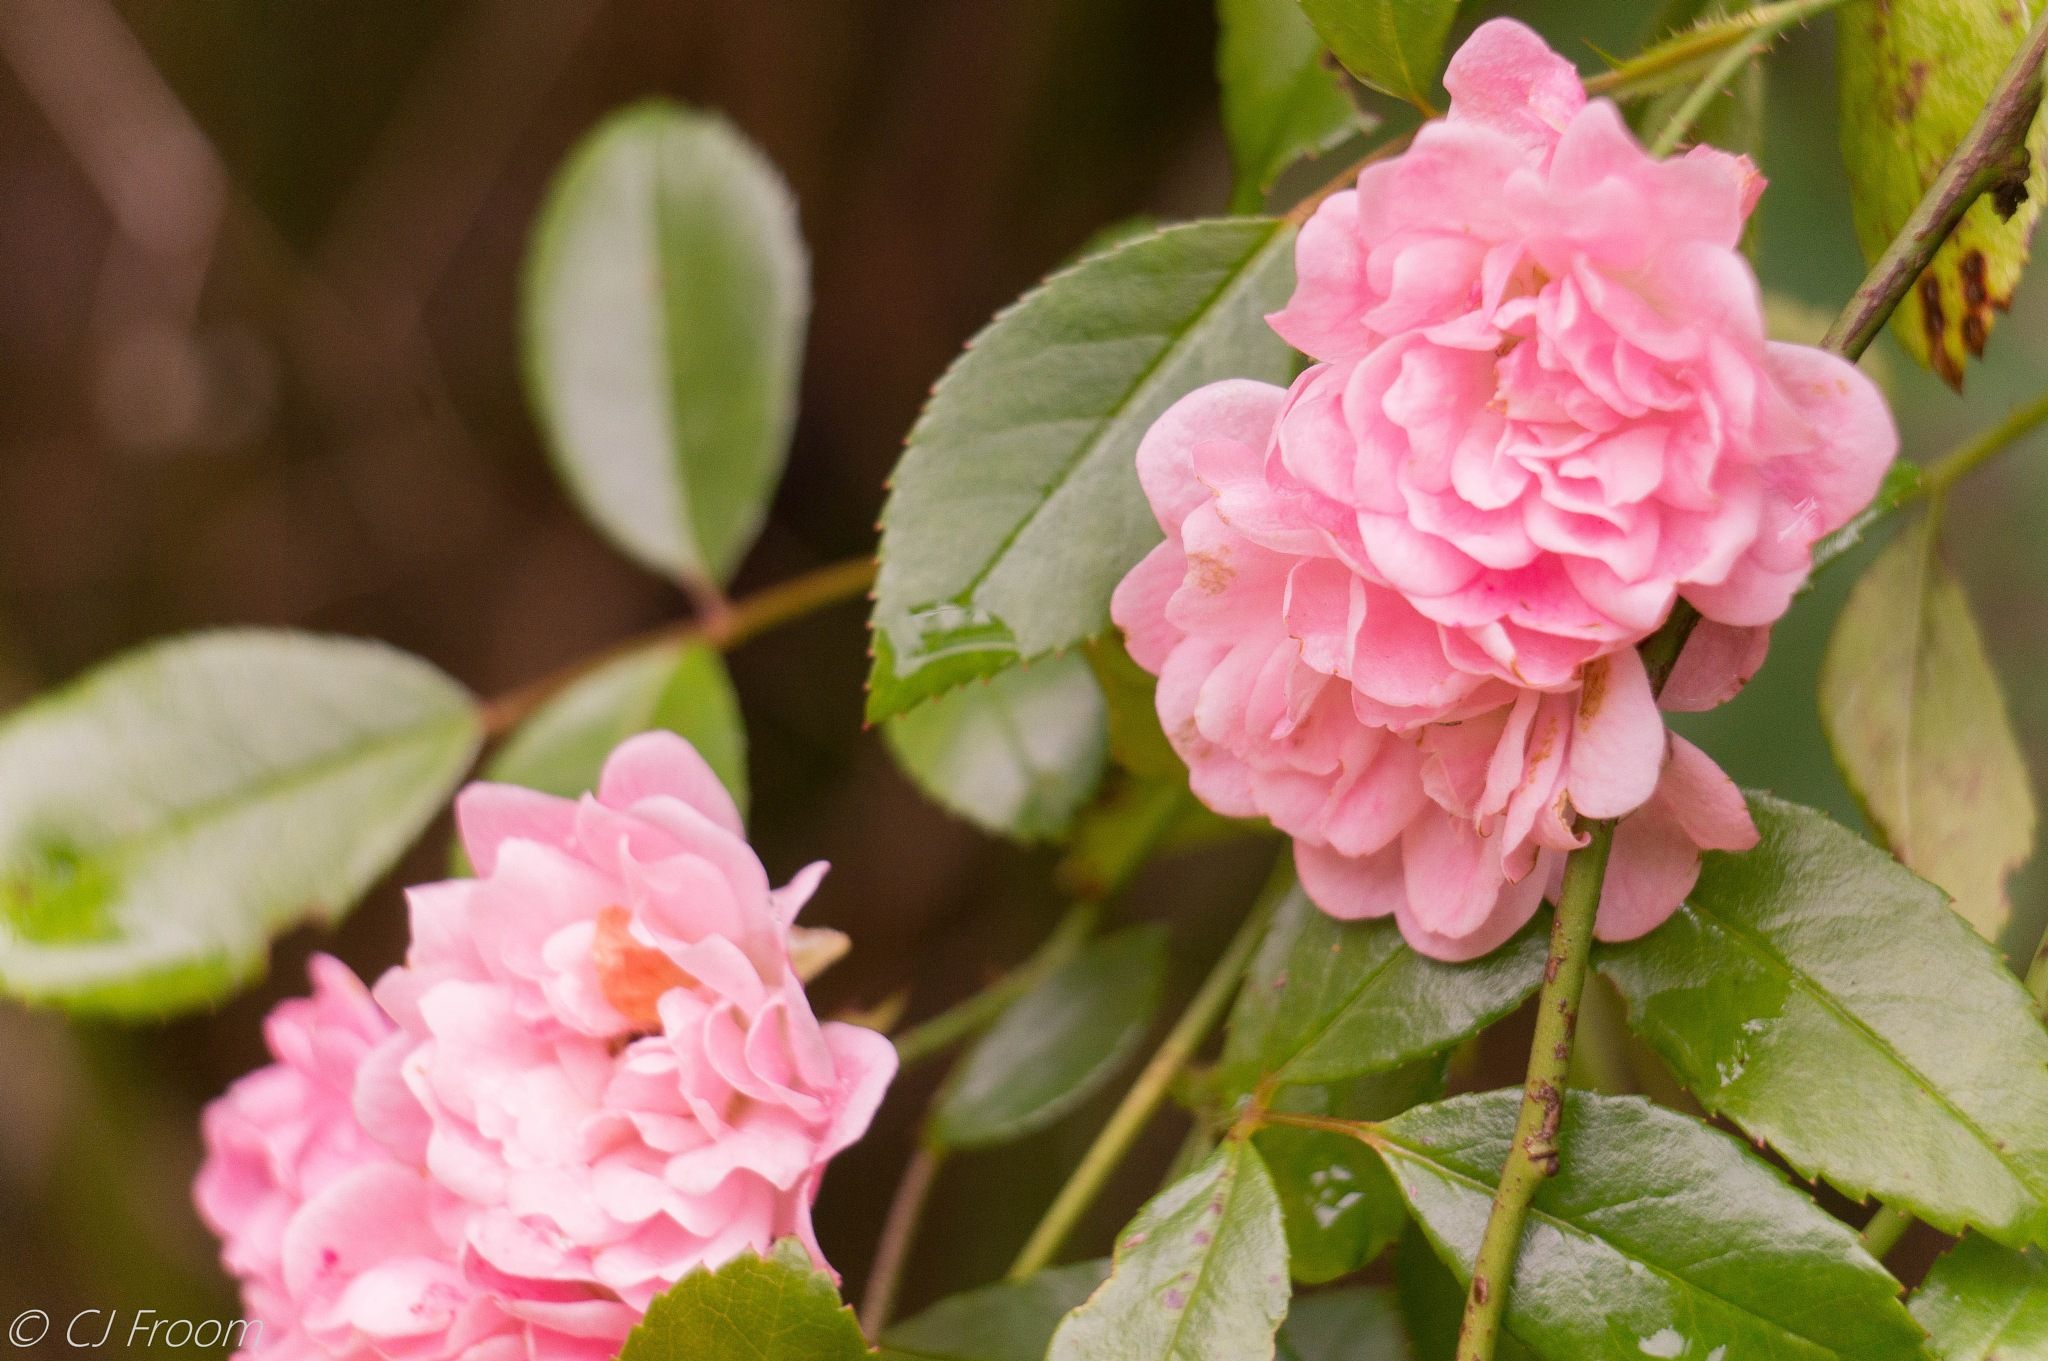 Pink Rose Cluster by Cj Froom